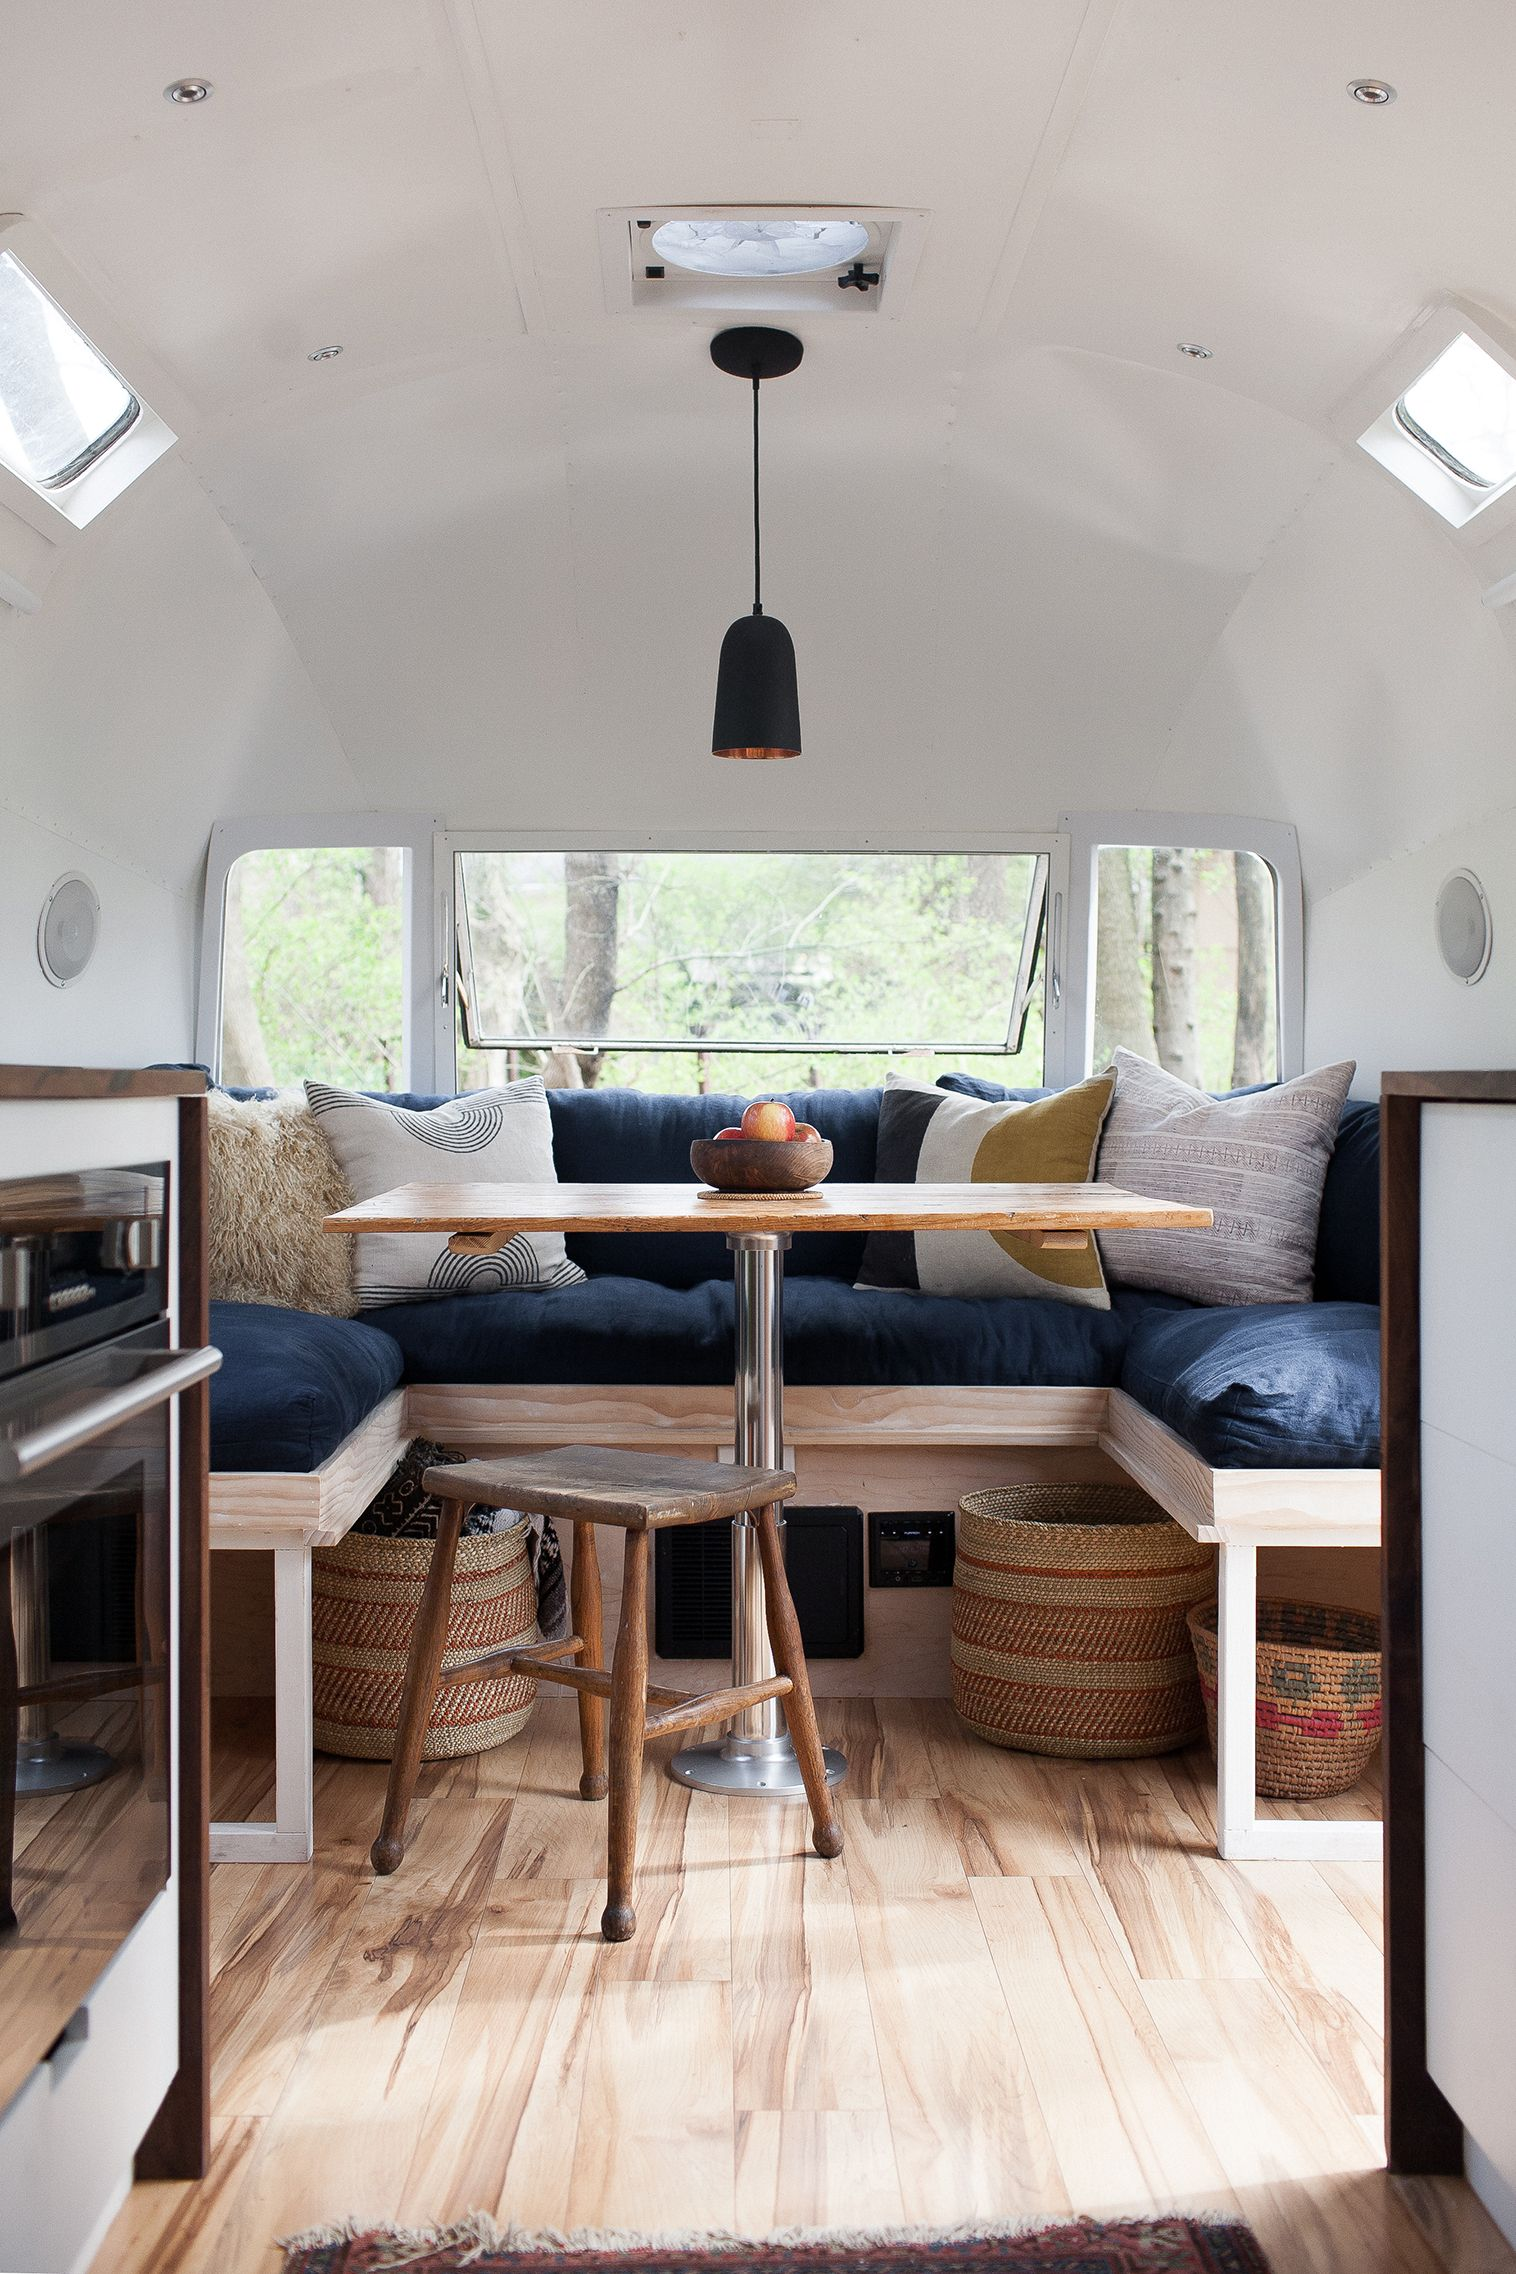 American retro caravans airstream renovation airstream sales uk - We Love A Good Fleet Of Design Savvy Vintage Airstreams And The Transient Lifestyle They Encourage For All So Naturally The Modern Caravan Has Our